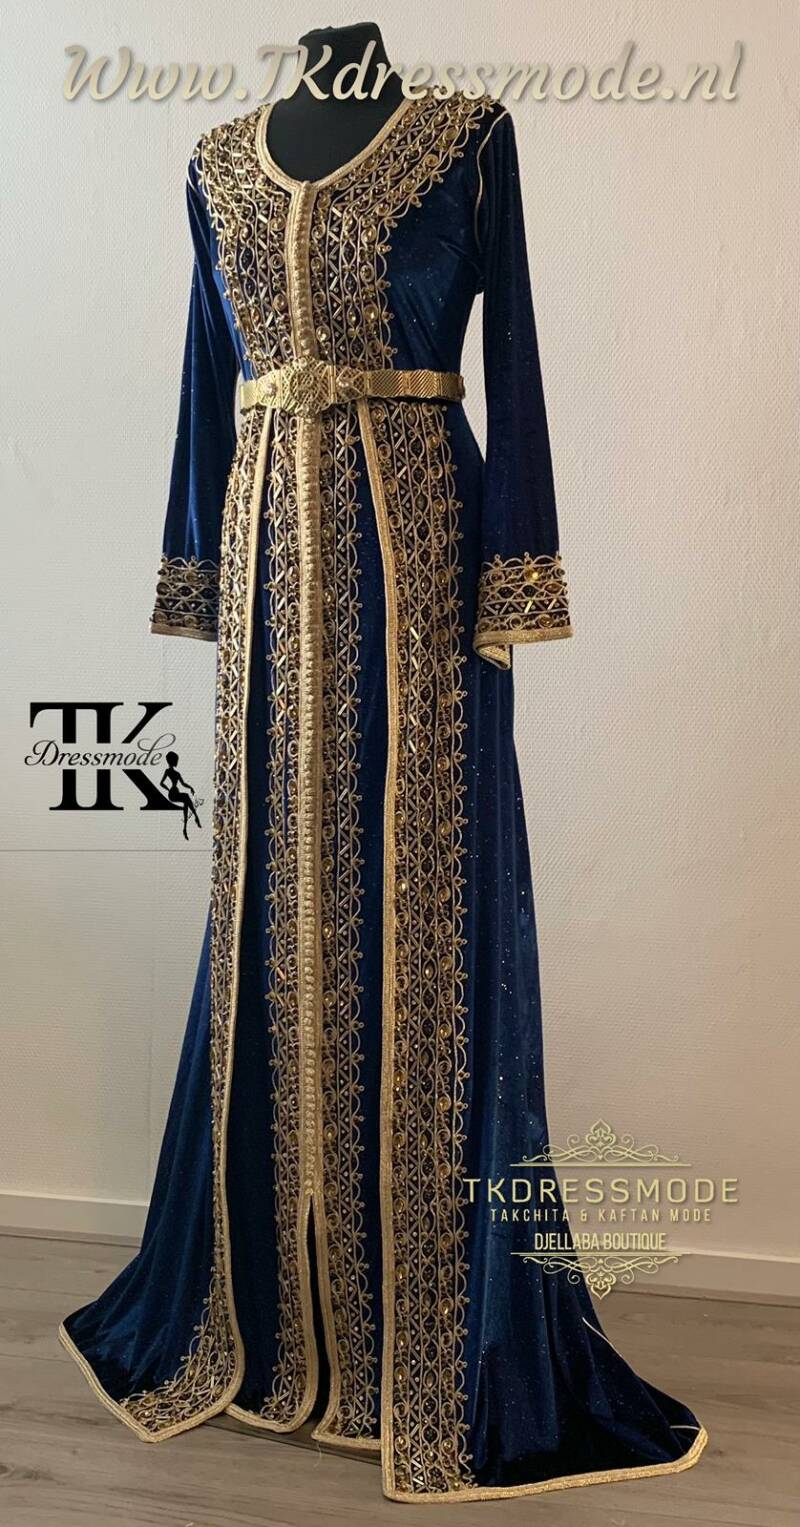 Kaftan Dress met Rok ( Mubra, Velvet )  Art. Nr 9.0011